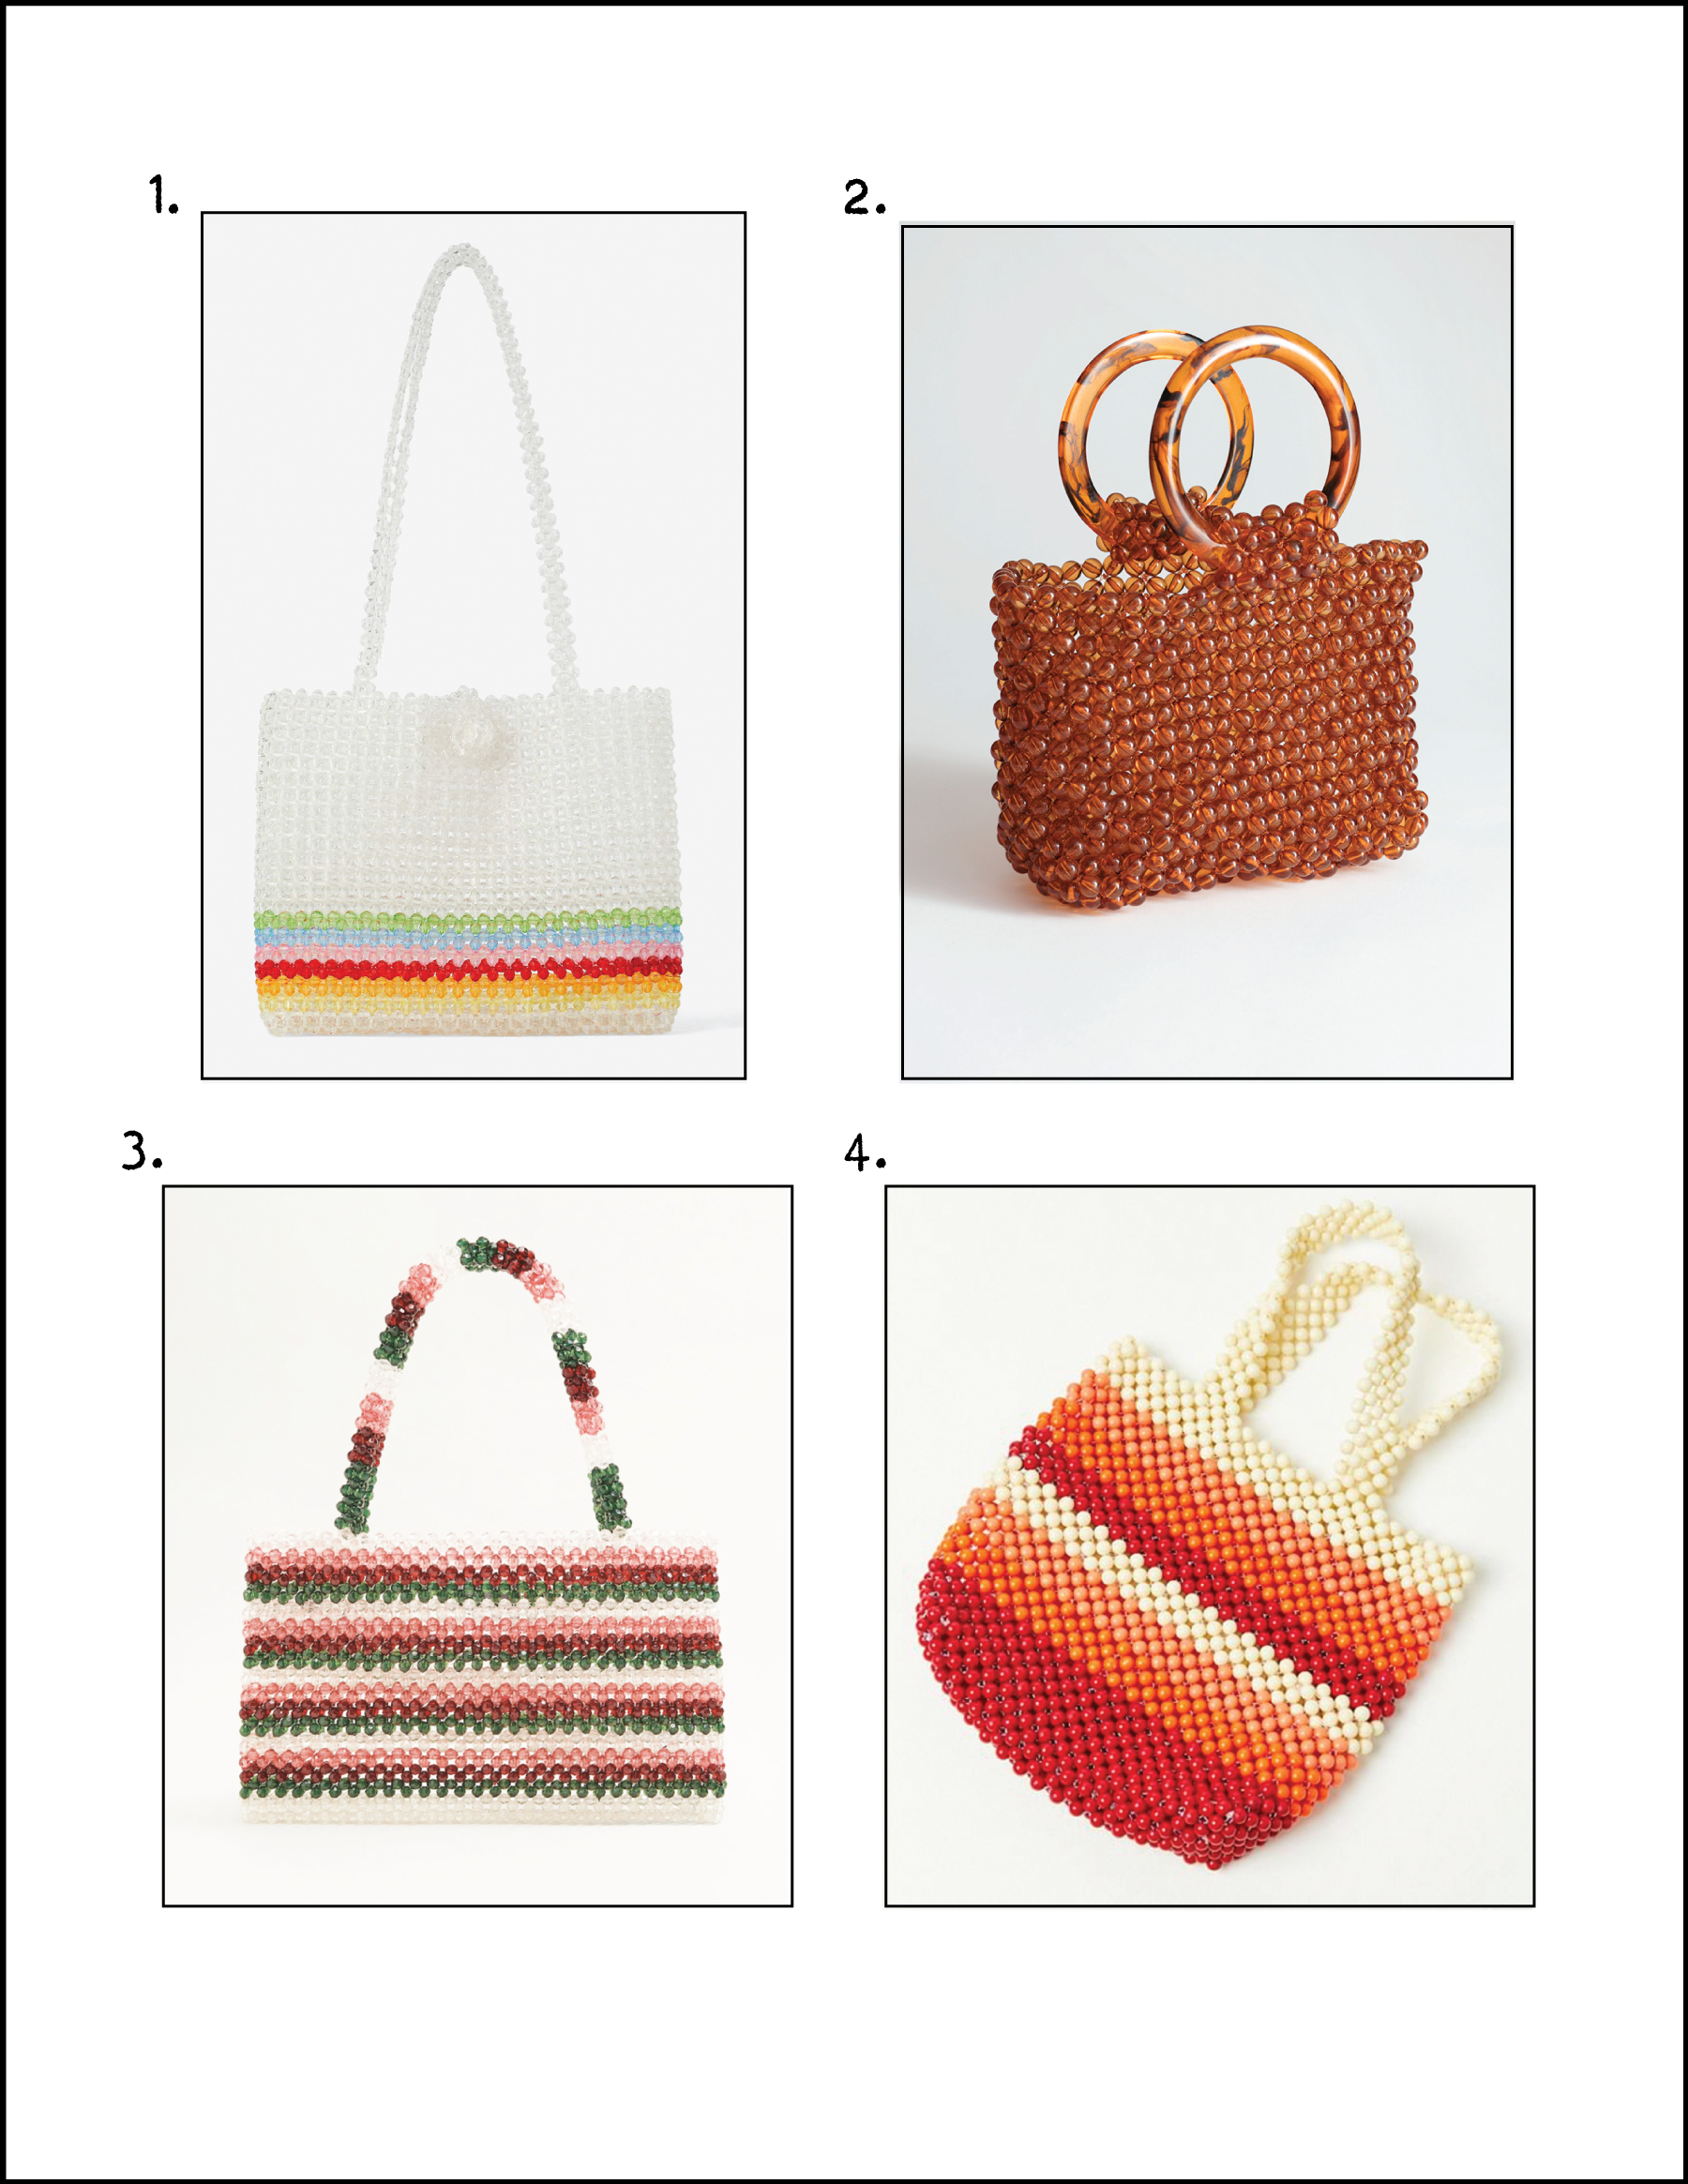 1.   Zara  , 2.   & Other Stories  , 3.   Mango  , 4.   Urban Outfitters